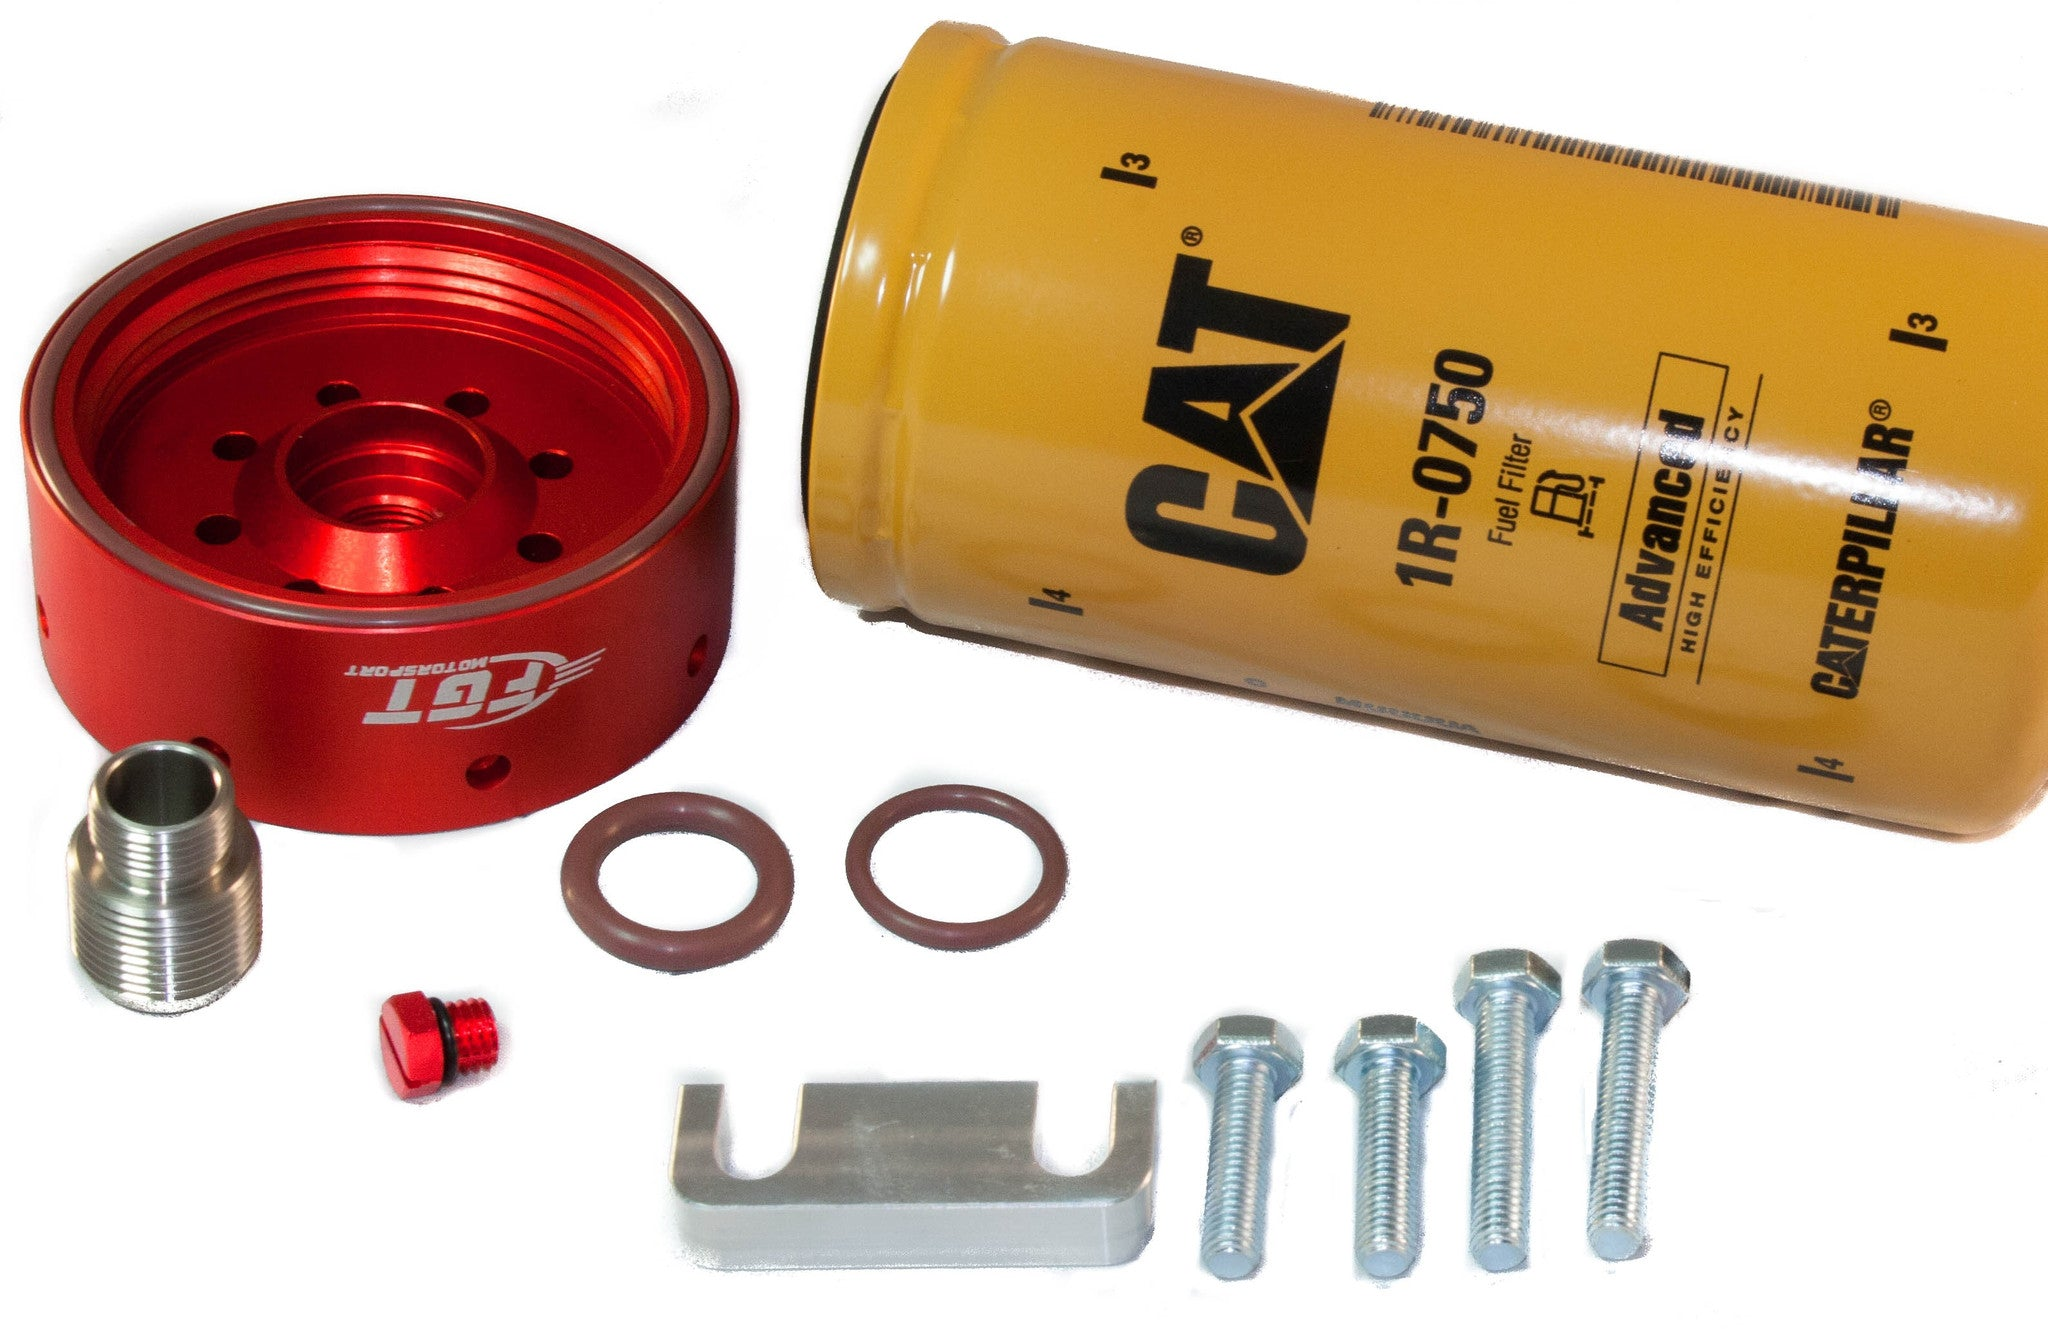 Diesel Products Fgt Motorsport High Performance Fuel Filters Duramax Cat Filter Adapter Conversion Kit